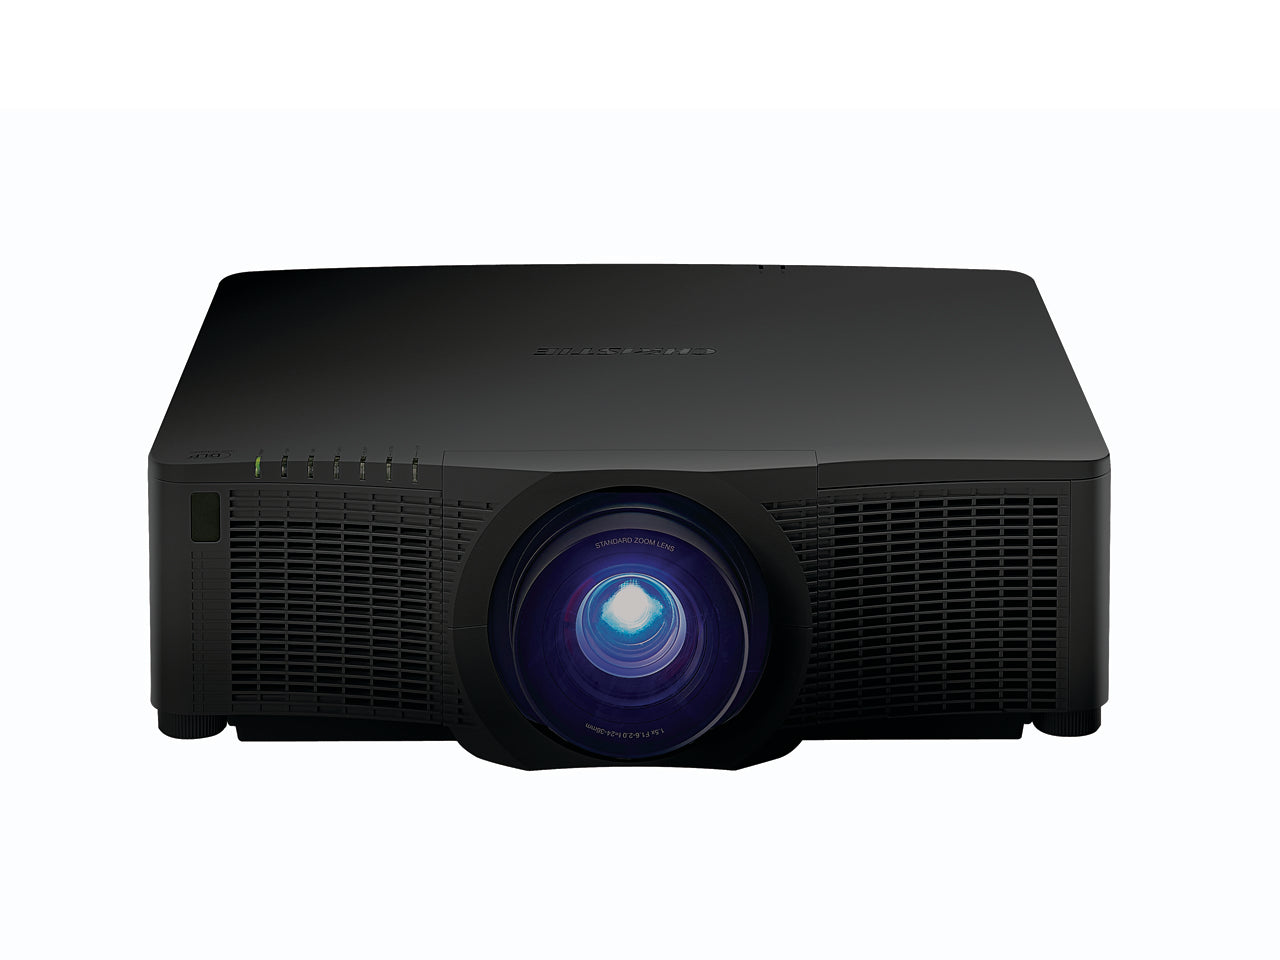 DXG1051-Q (Black) 1DLP dual-lamp digital projector - Used